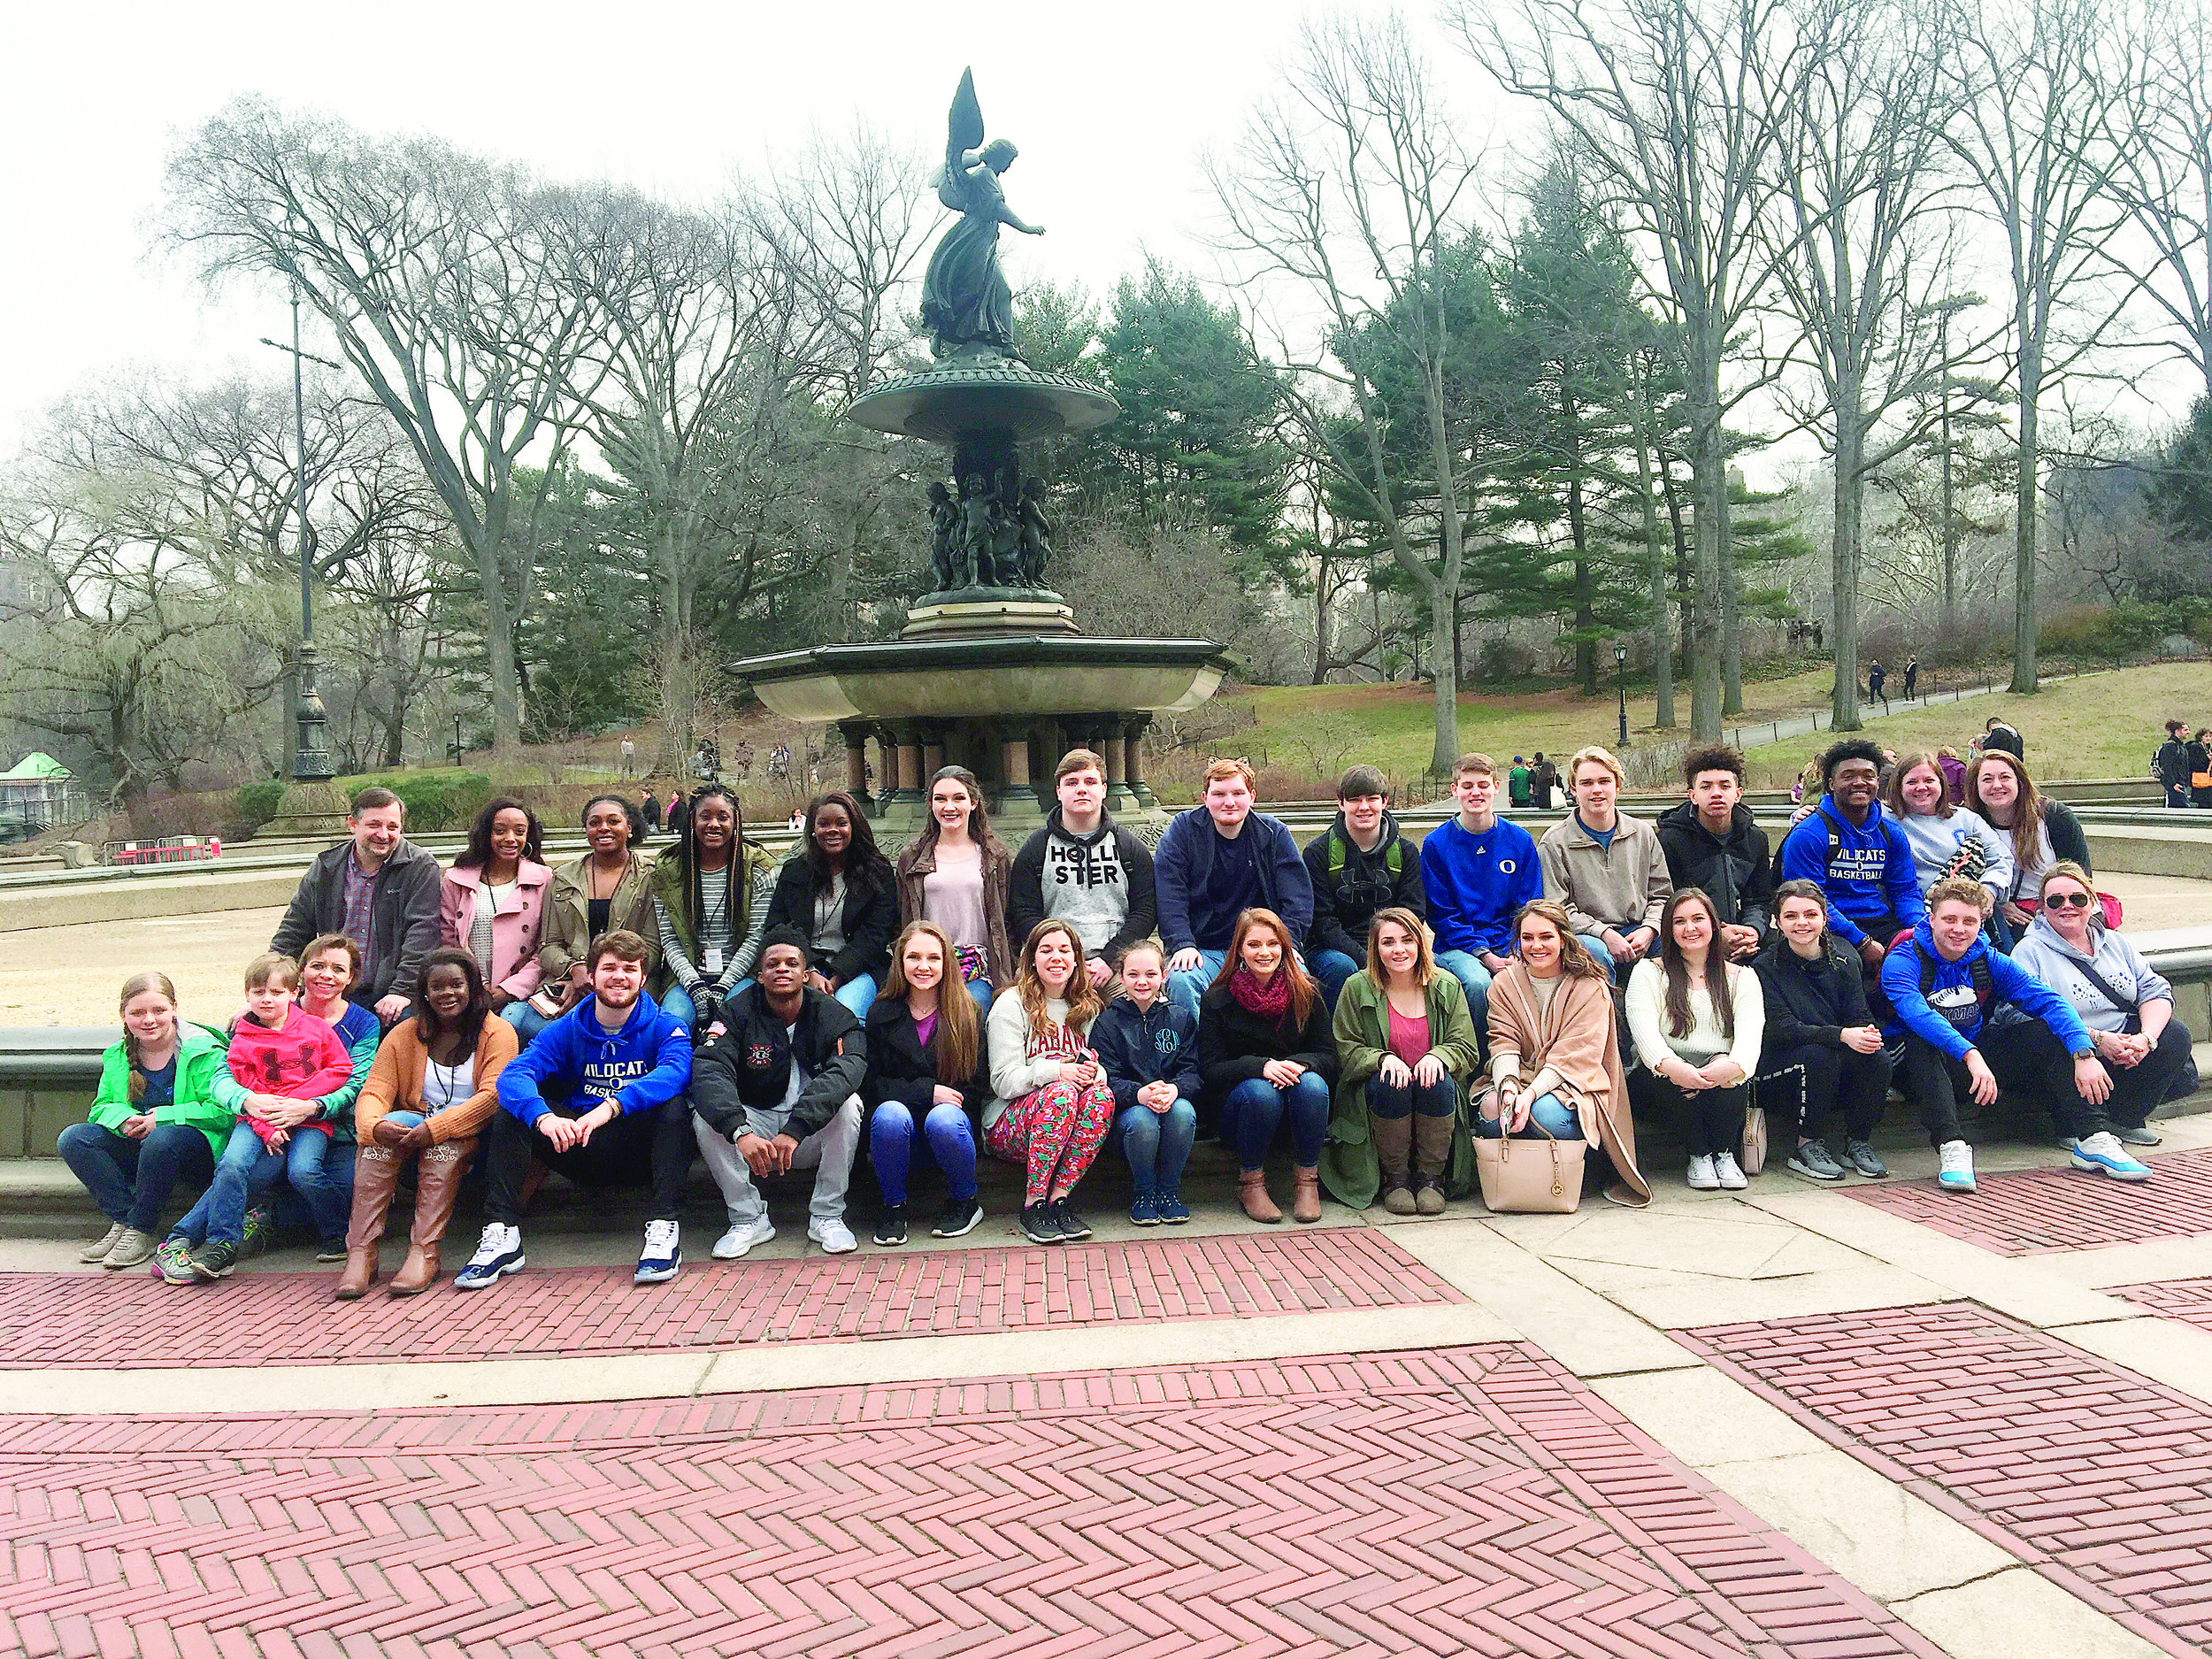 Oakman High School's SGA students visited Central Park in New York last week, along with many other landmarks. Pictured behind students is the Bethesda Fountain.